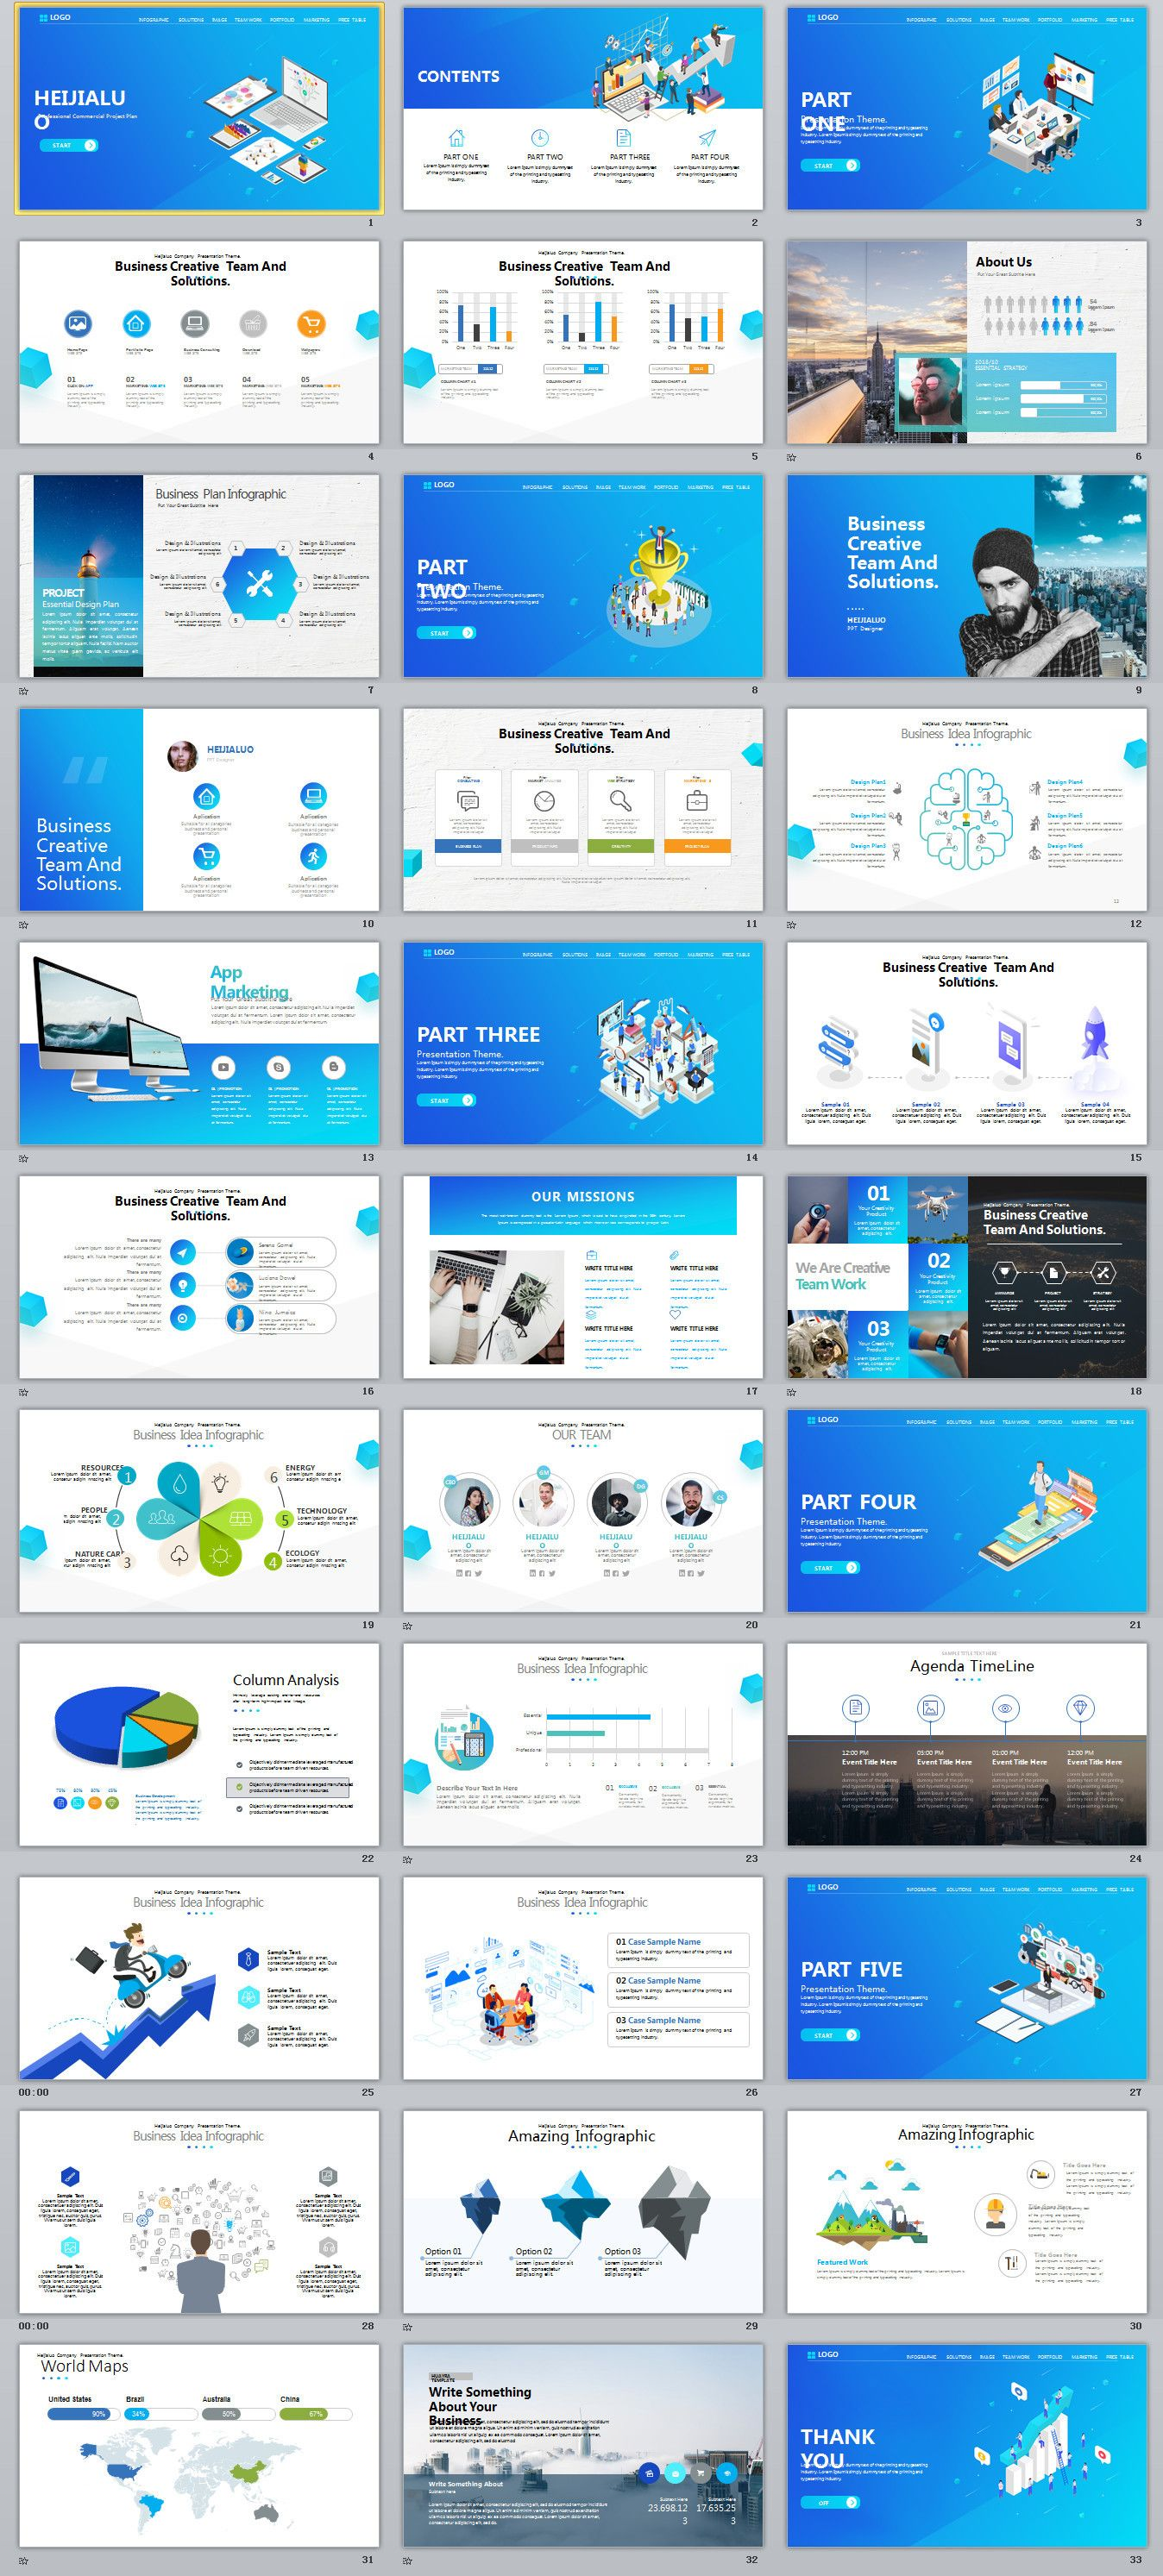 33 business website ui design powerpoint template powerpoint 33 business website ui design powerpoint template powerpoint templates presentation animation toneelgroepblik Choice Image